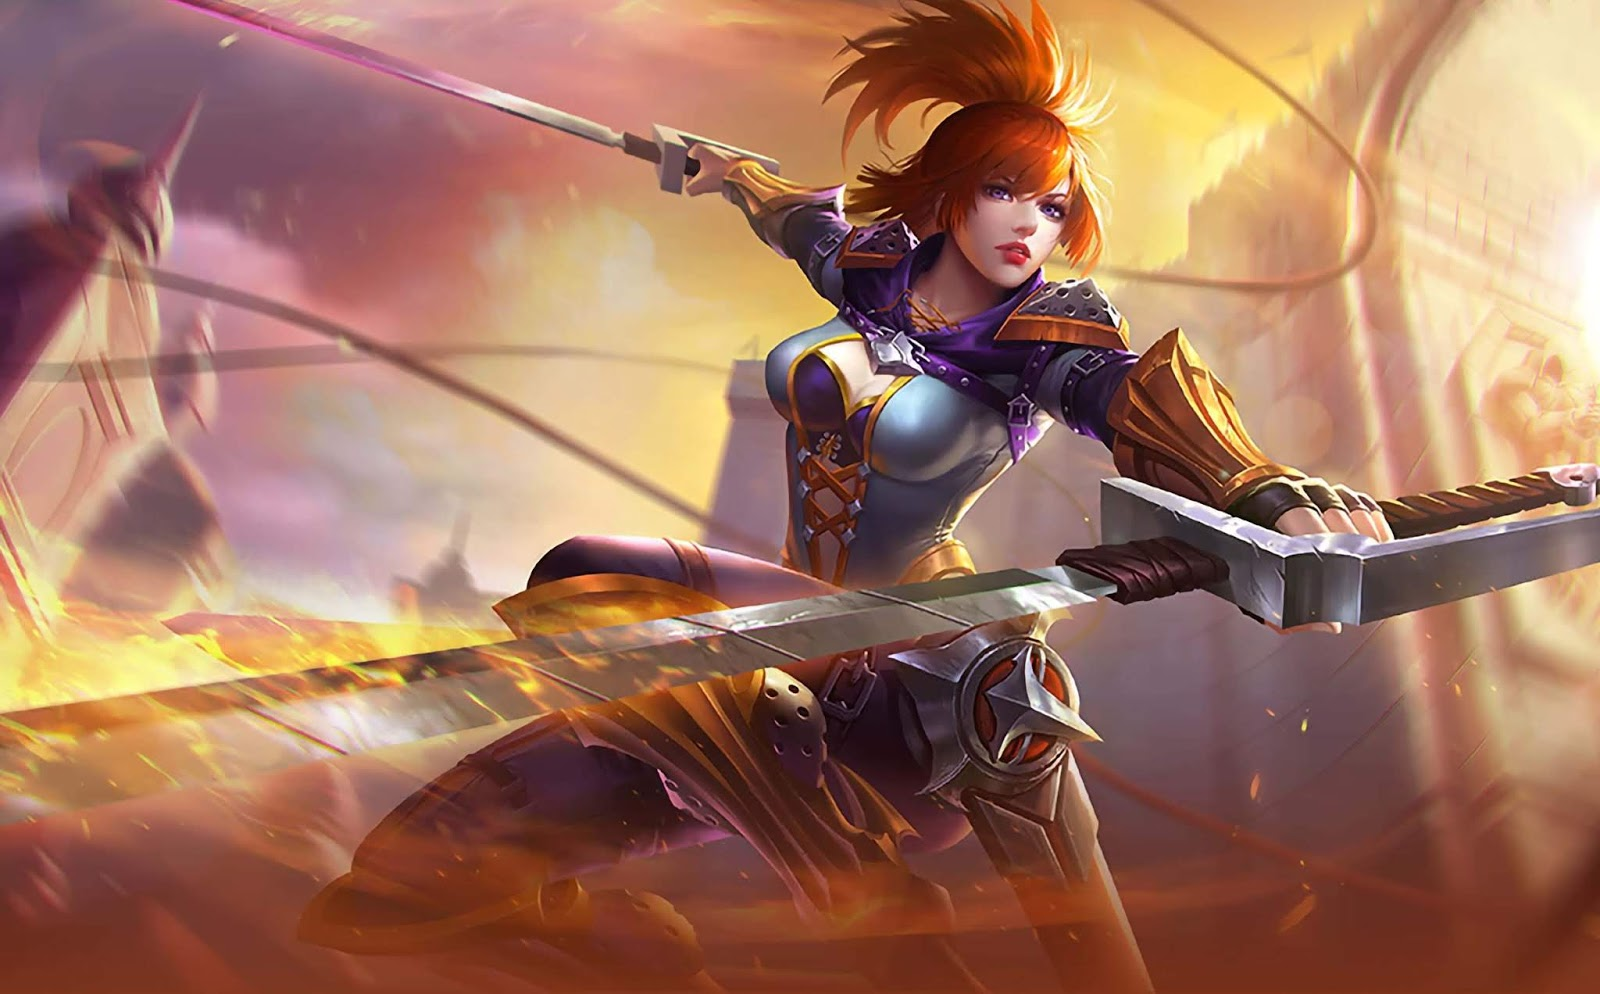 Wallpaper Fanny Blade Dancer Skin Mobile Legends HD for PC